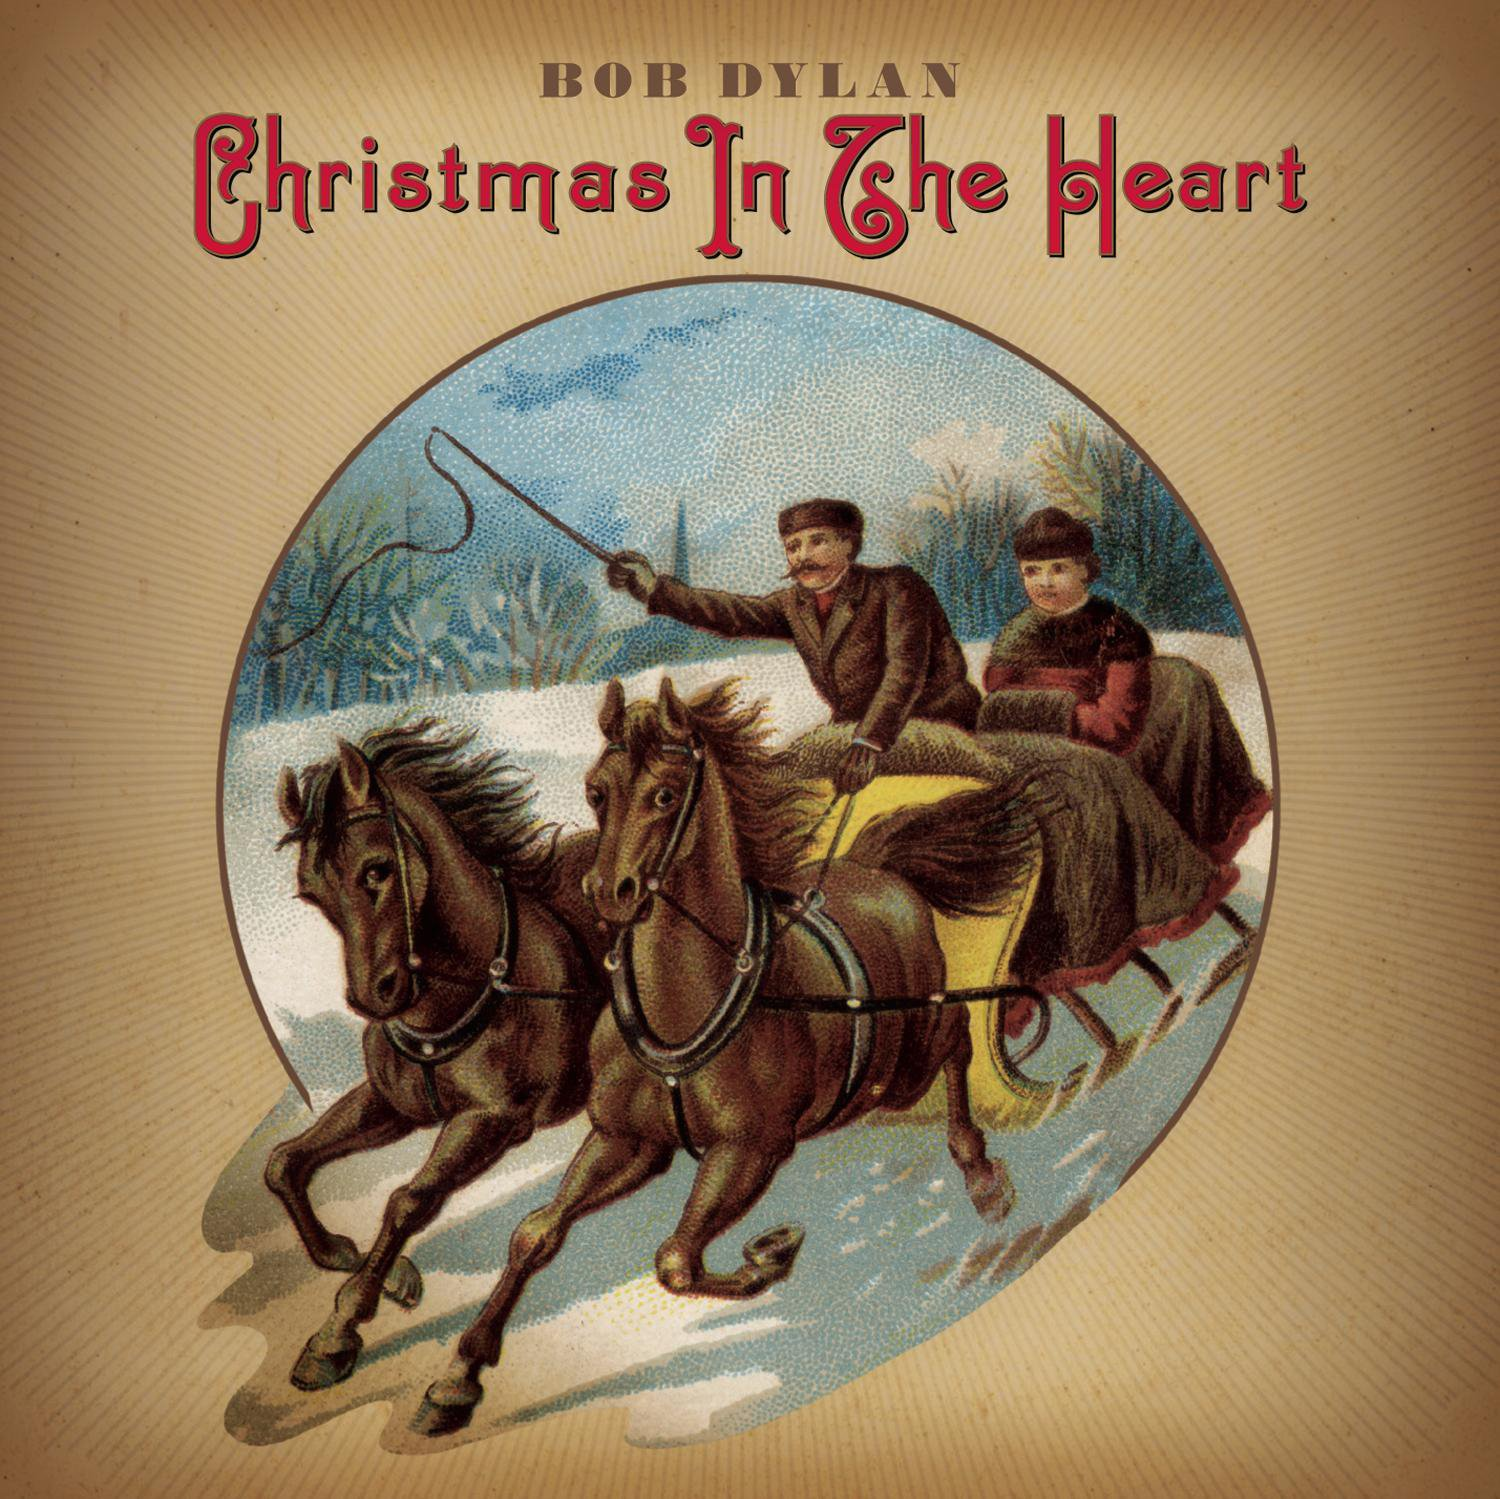 Bob Dylan, Christmas in the Heart